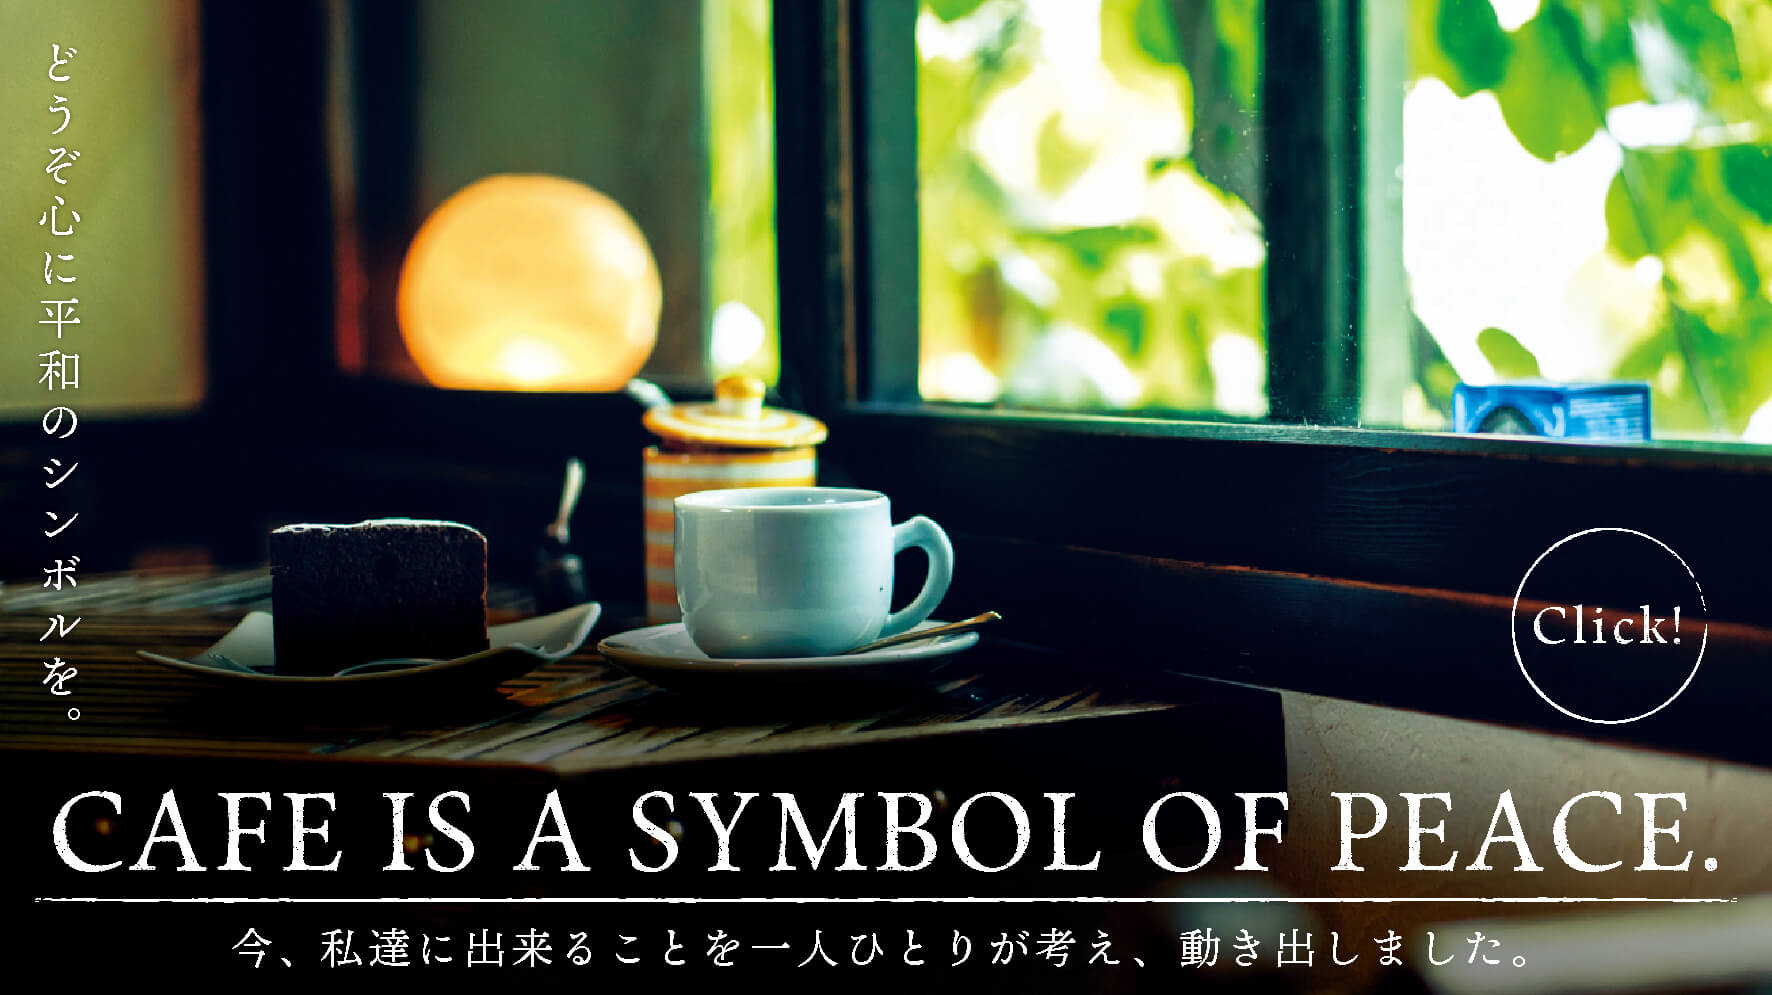 CAFE IS A SYMBOL OF PEACE